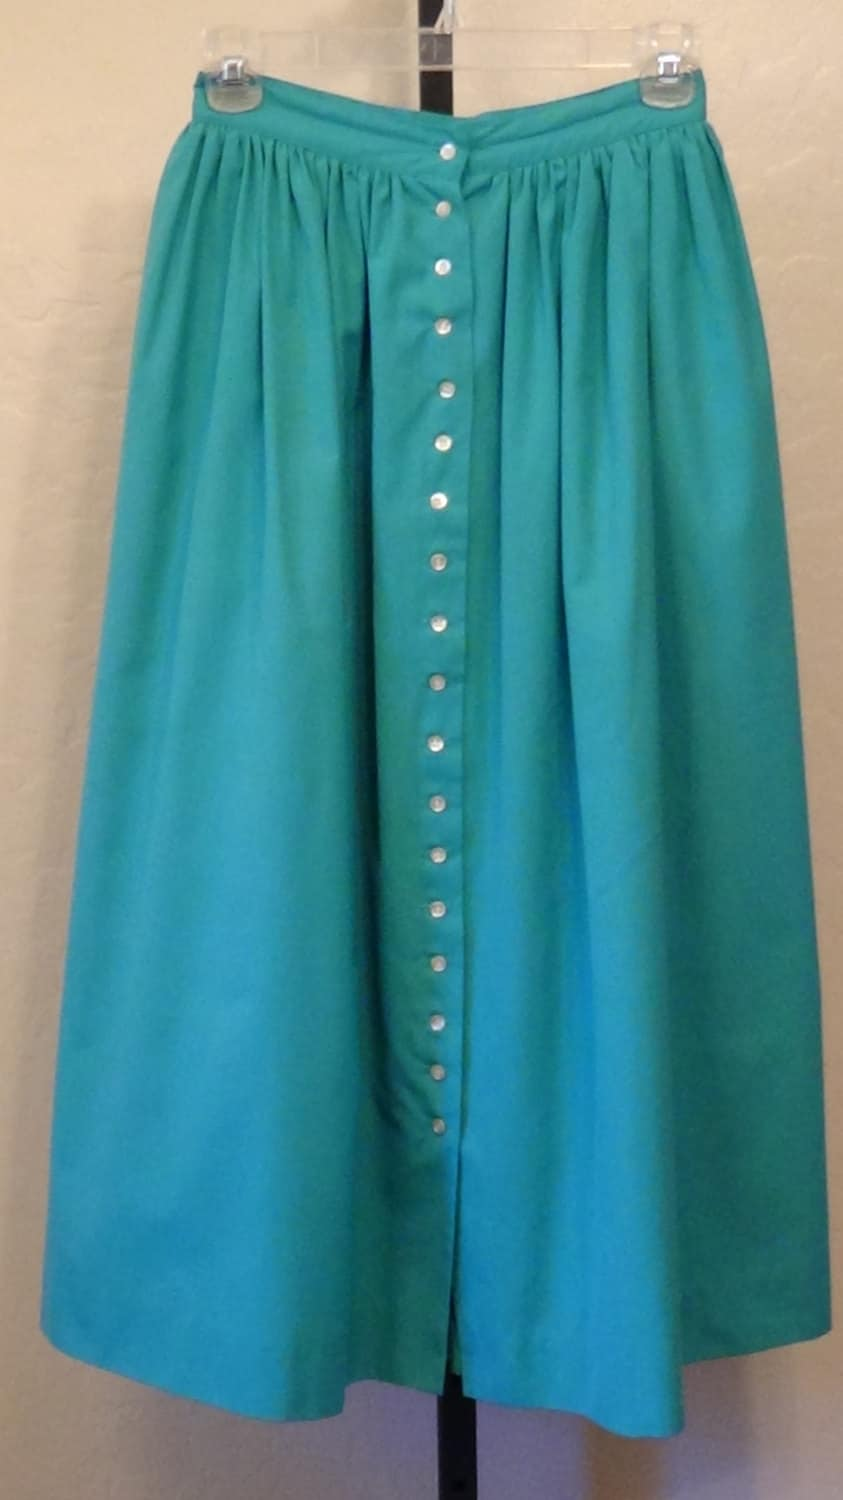 vintage teal turquoise skirt midi skirt by juniperlaneaz